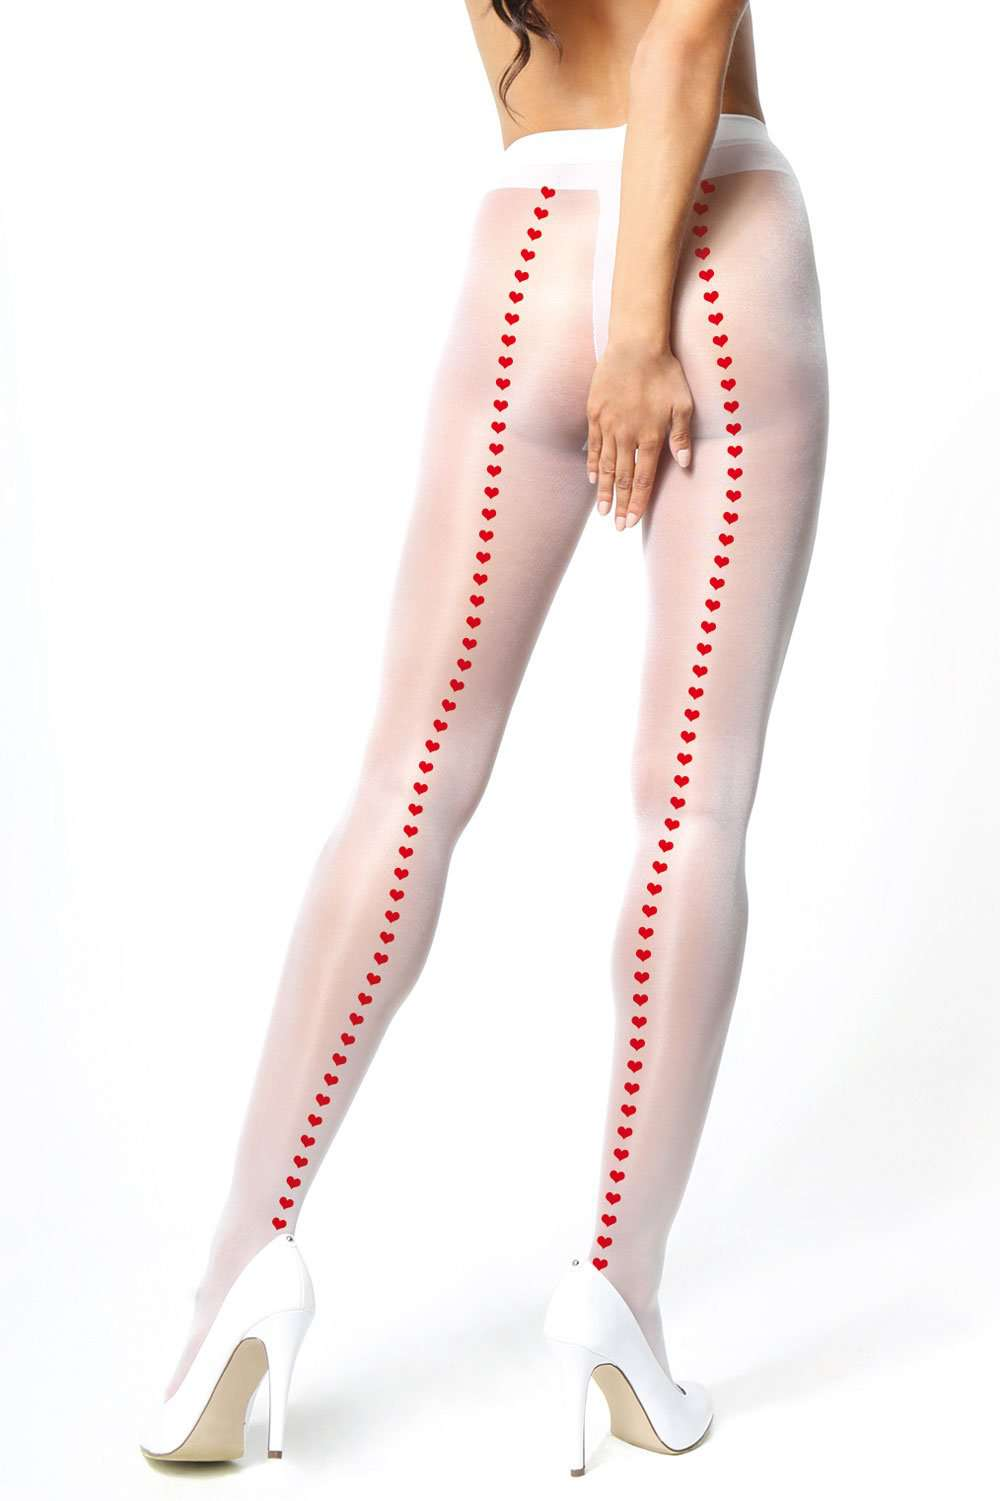 missO Open Crotch Heart Tights 20 Denier